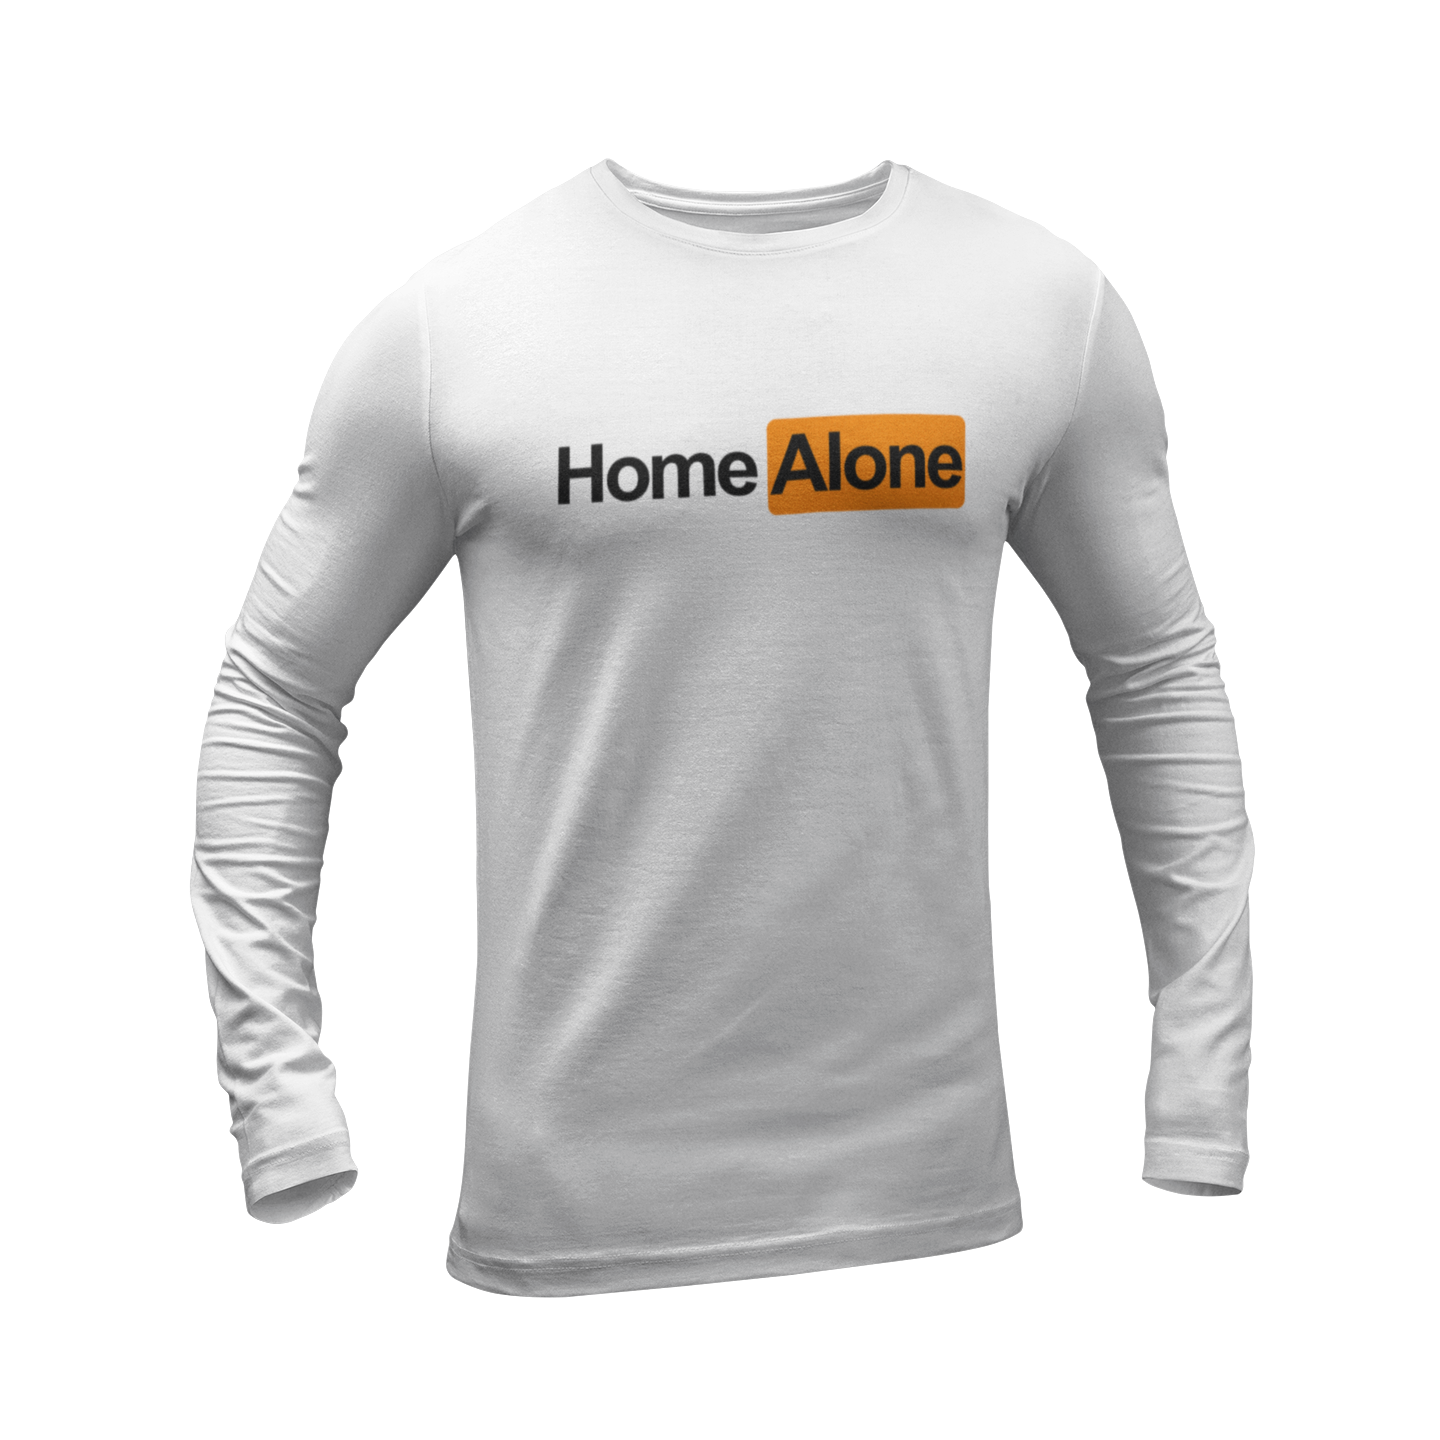 Home Alone Full Sleeves T-shirt - ateedude